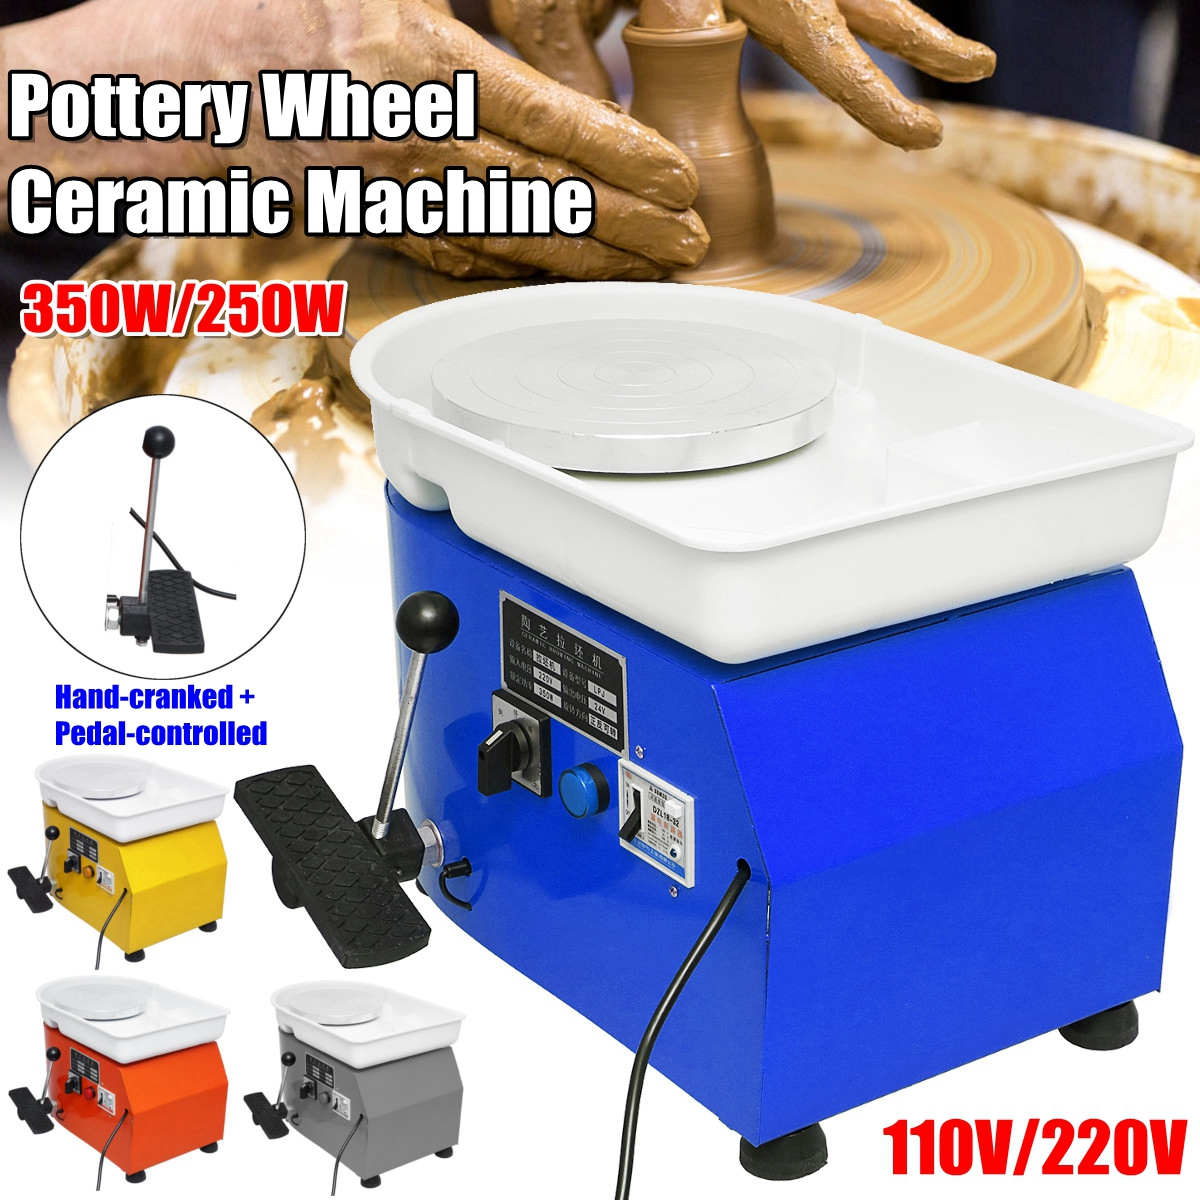 220V Pottery Forming Machine 250W/350W Electric Pottery Wheel DIY Clay Tool with Tray For Ceramic Work Ceramics